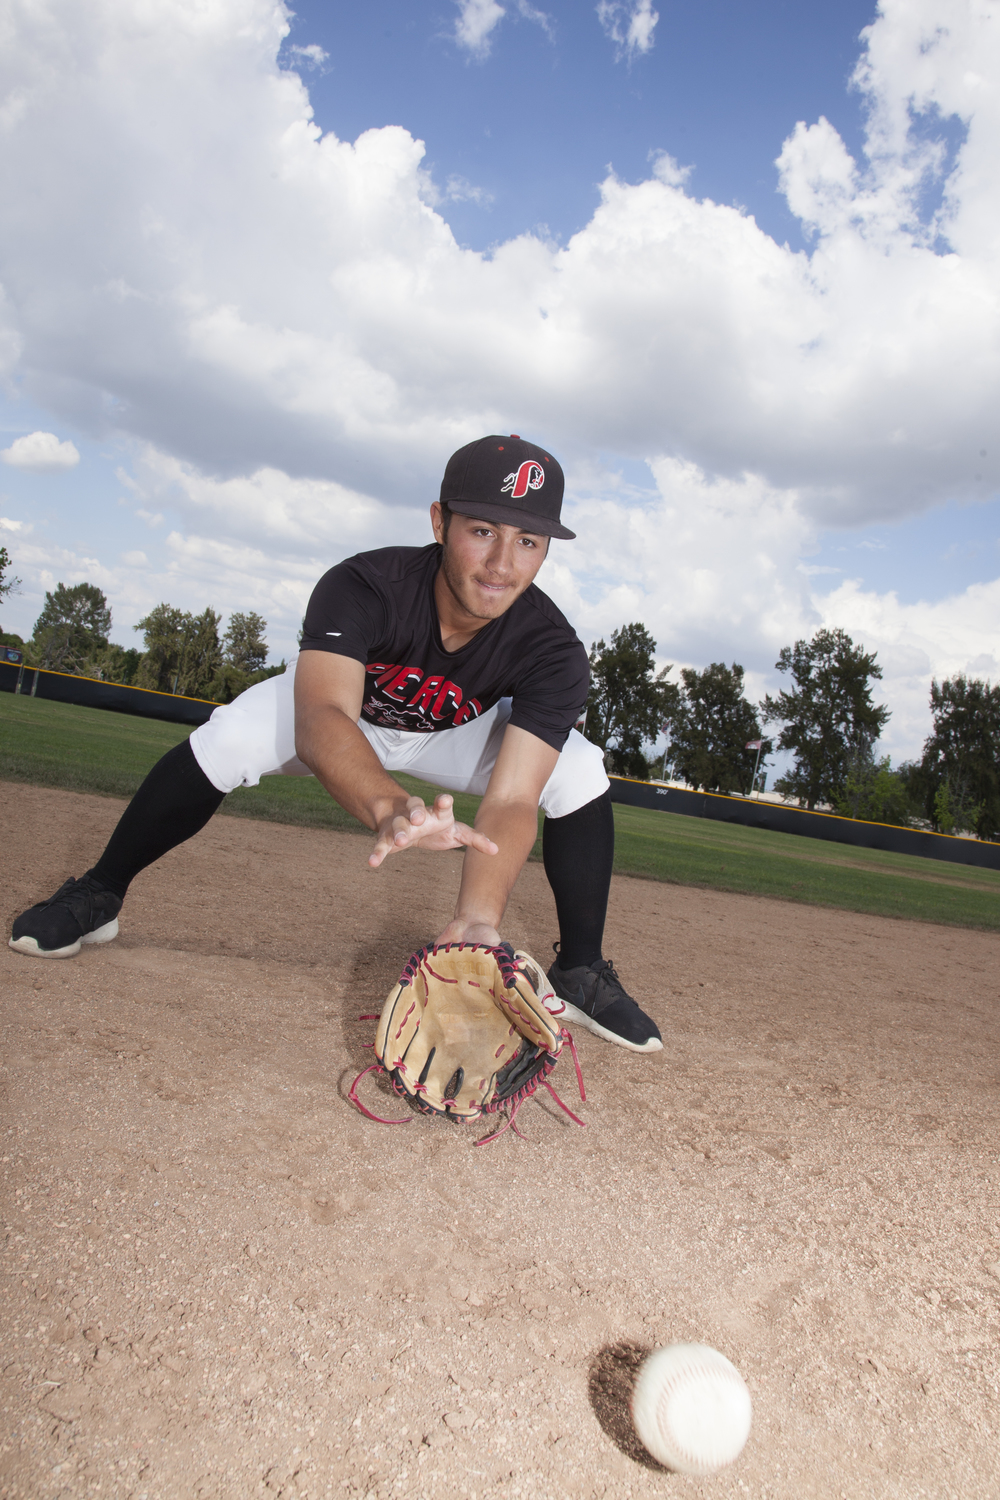 """""""It's so much more than just physical abilities. It's a lot of mental stuff and you have to be thinking after every pitch and action the whole game,"""" said Jordan Abushala about playing the game of baseball. Abushala fields a ground ball at Joe Kelly Field in Woodland Hills, Calif. on Monday, April 11, 2016."""